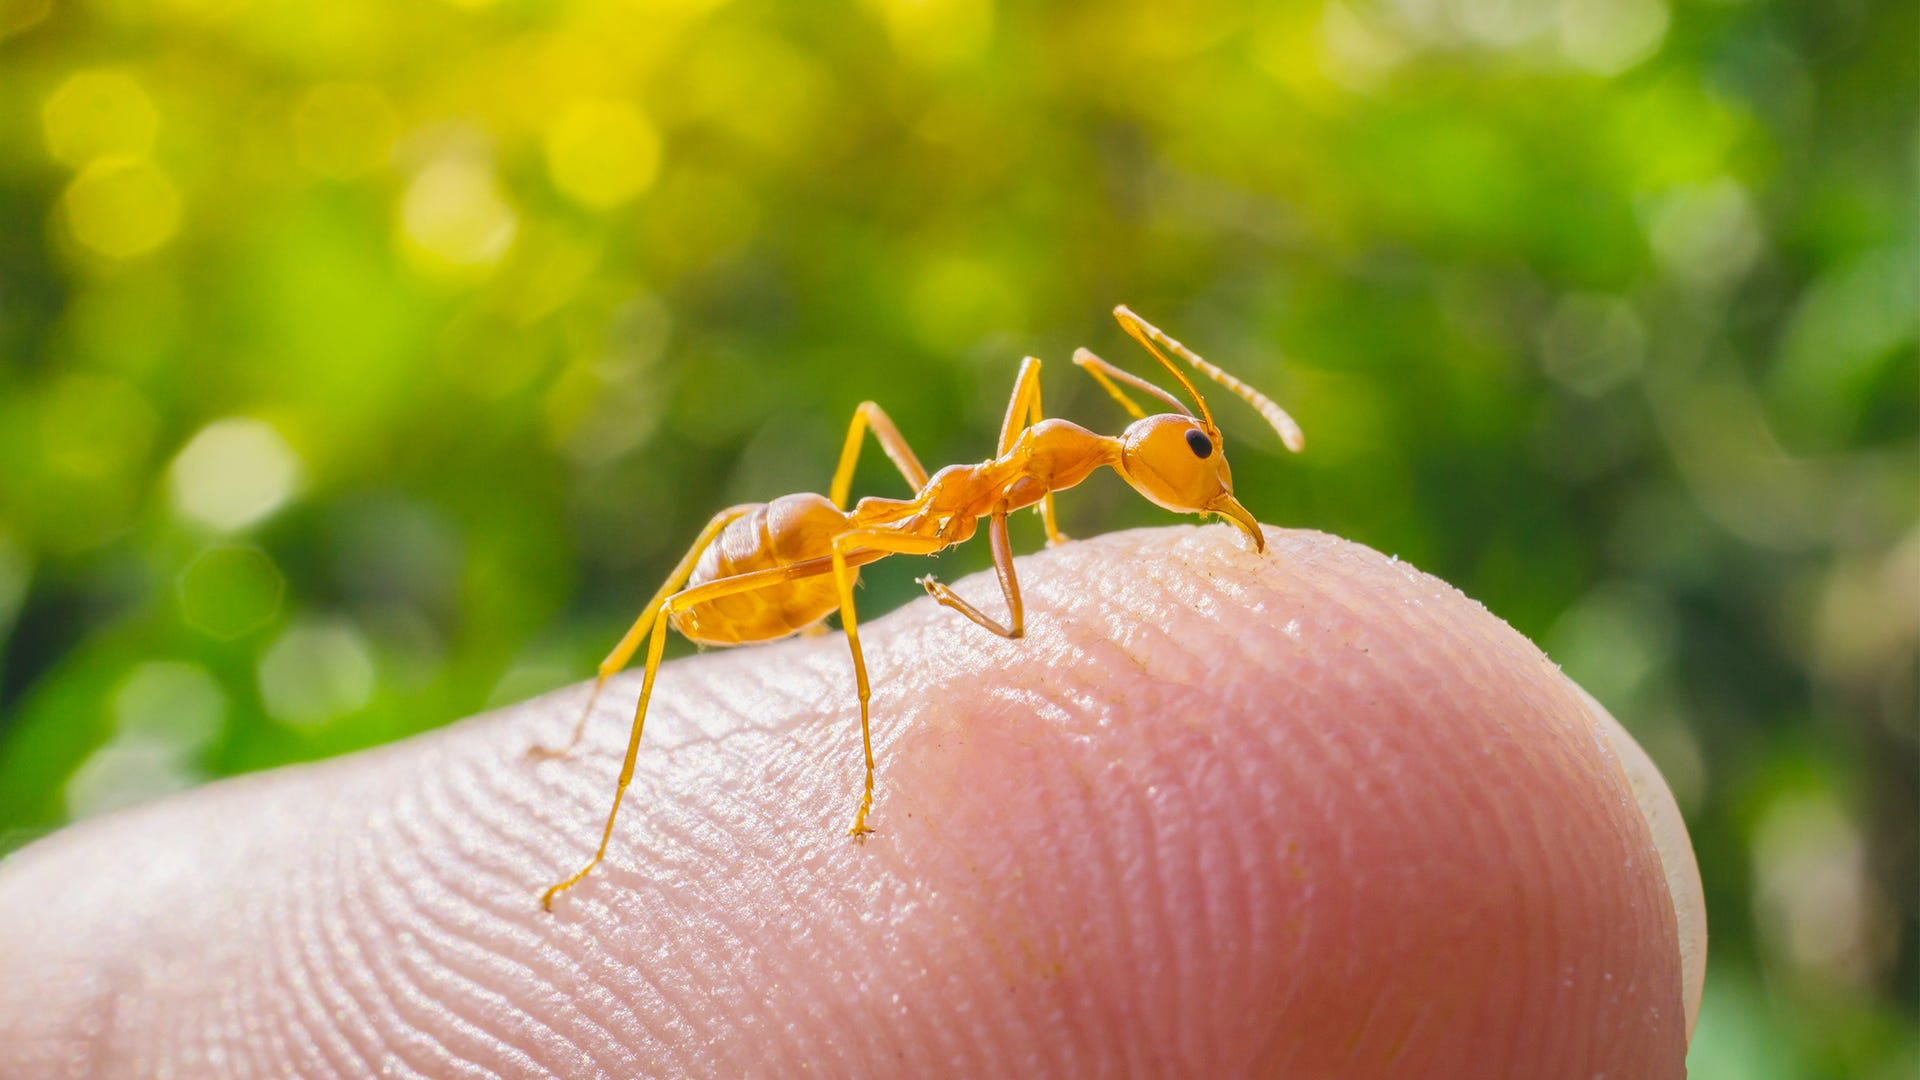 How to ID Insects